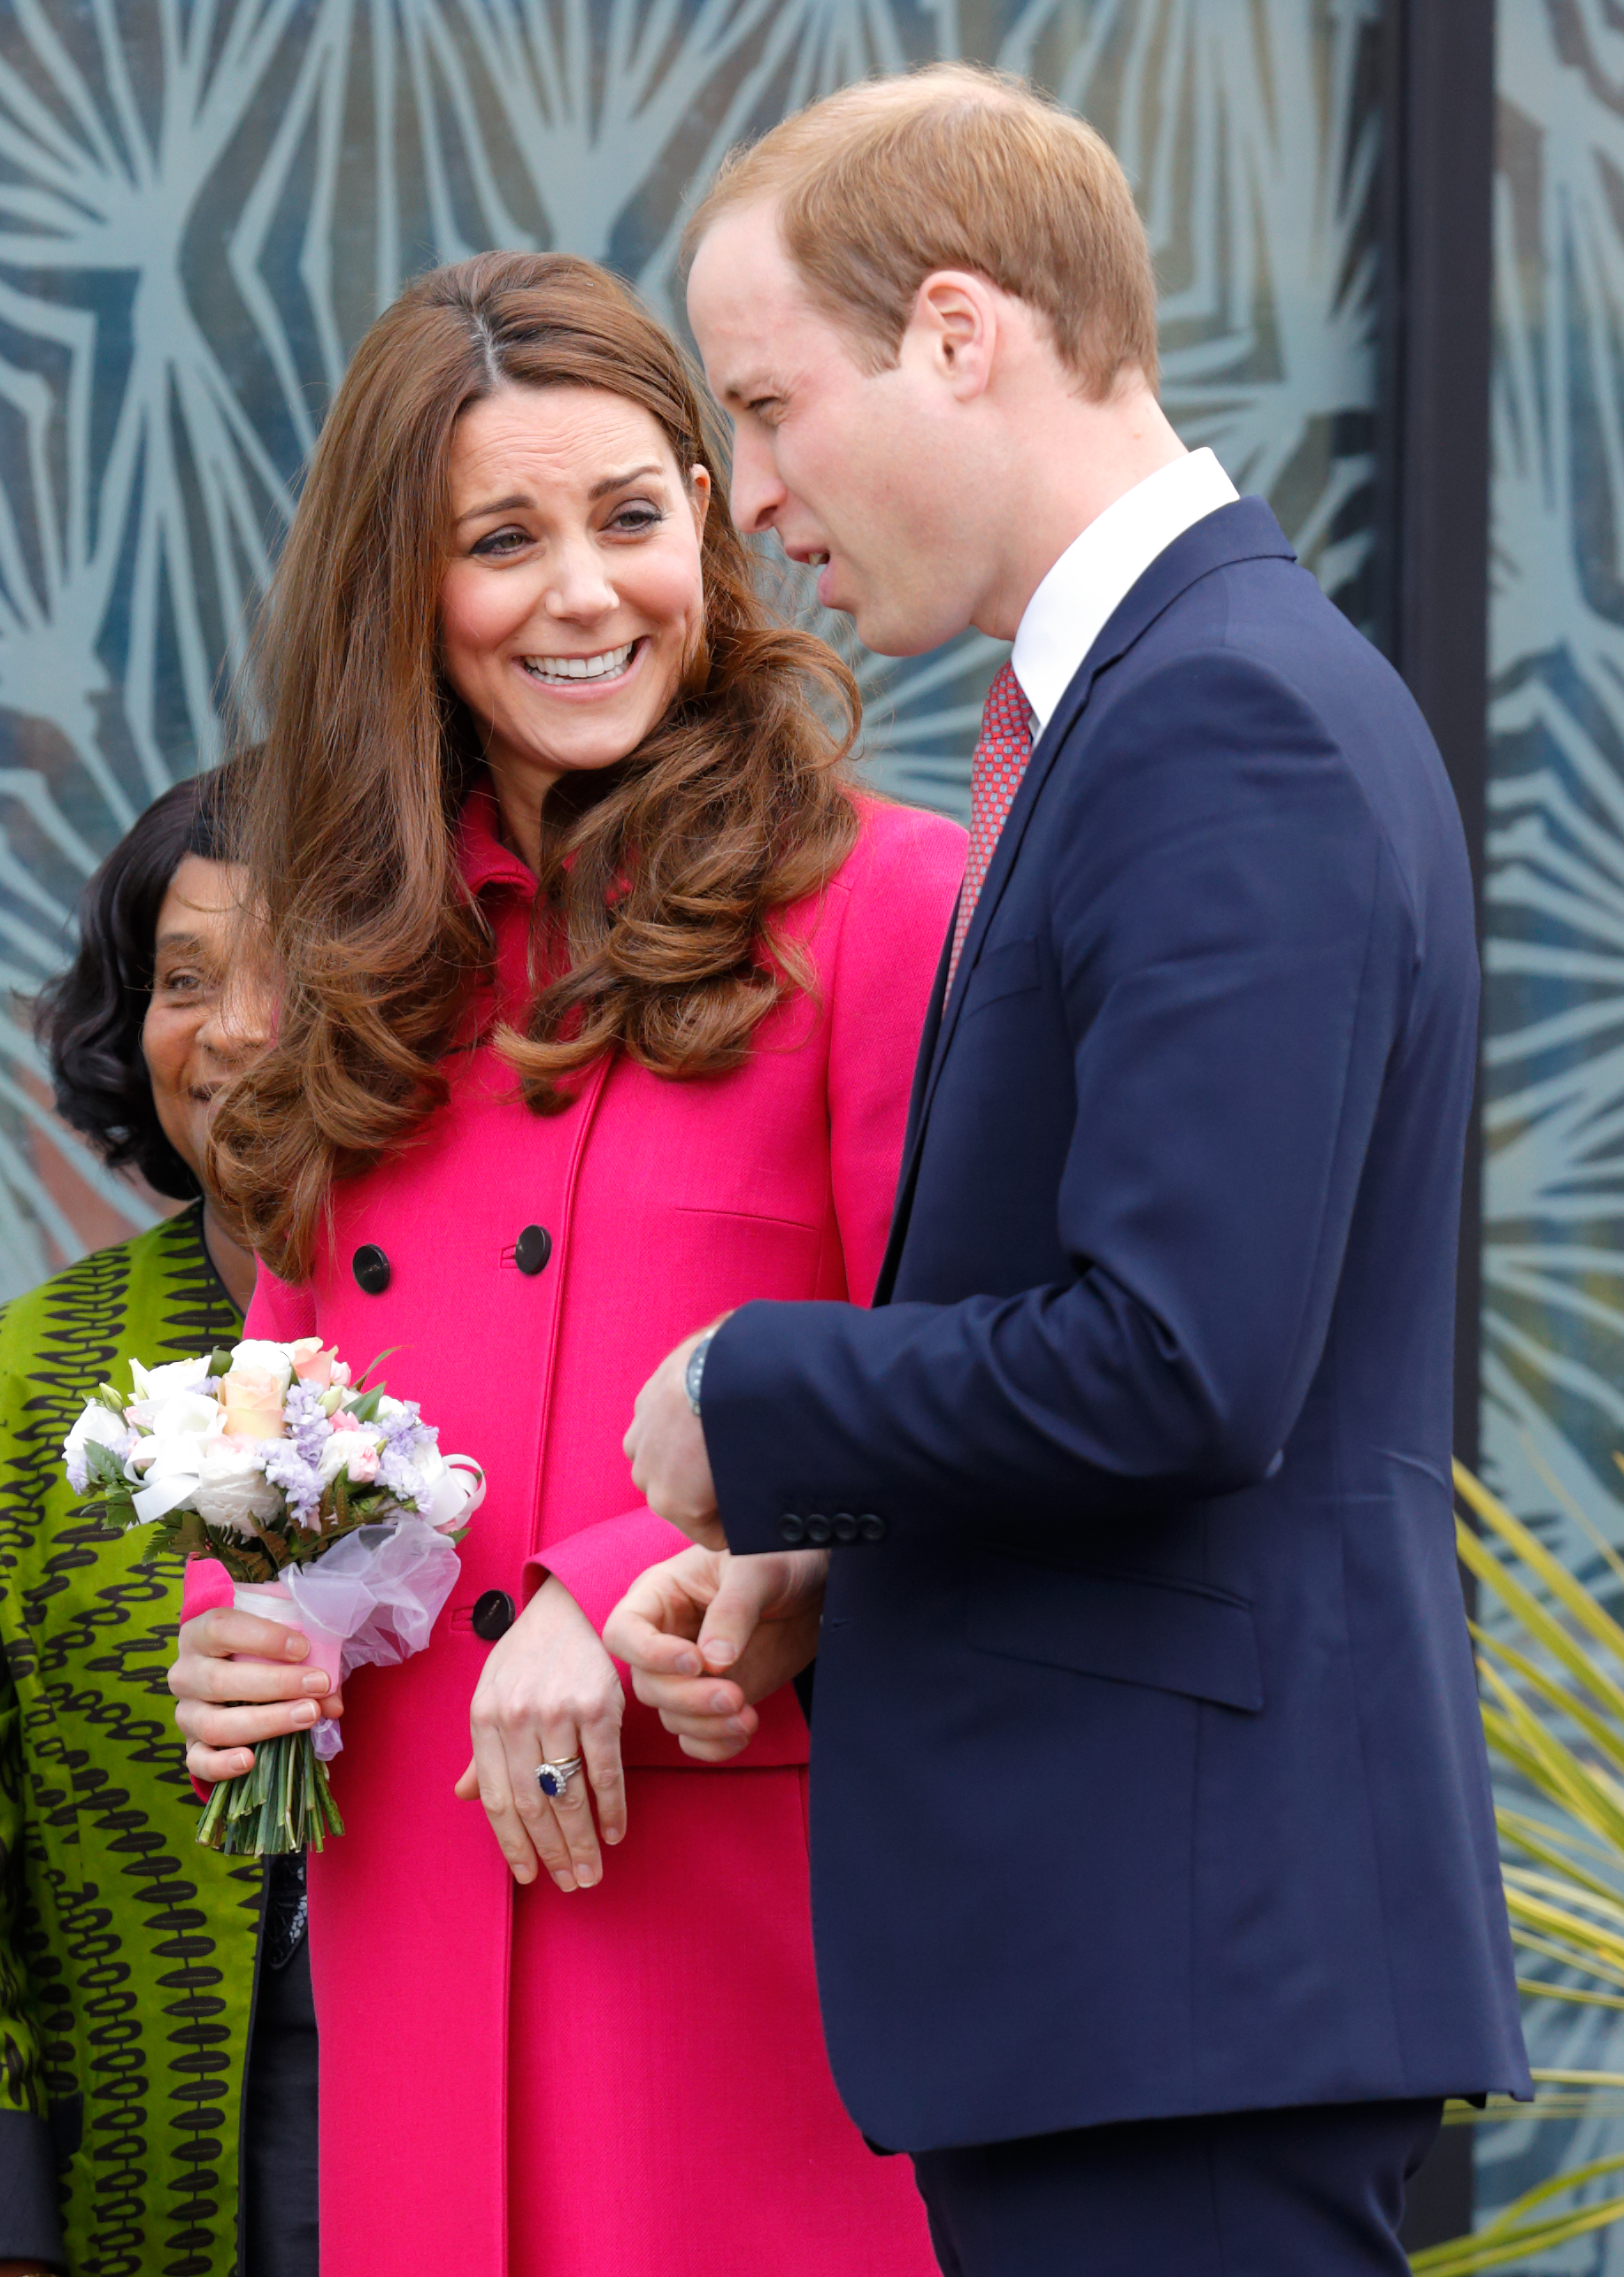 Prince William Kate Middleton Laugh Getty